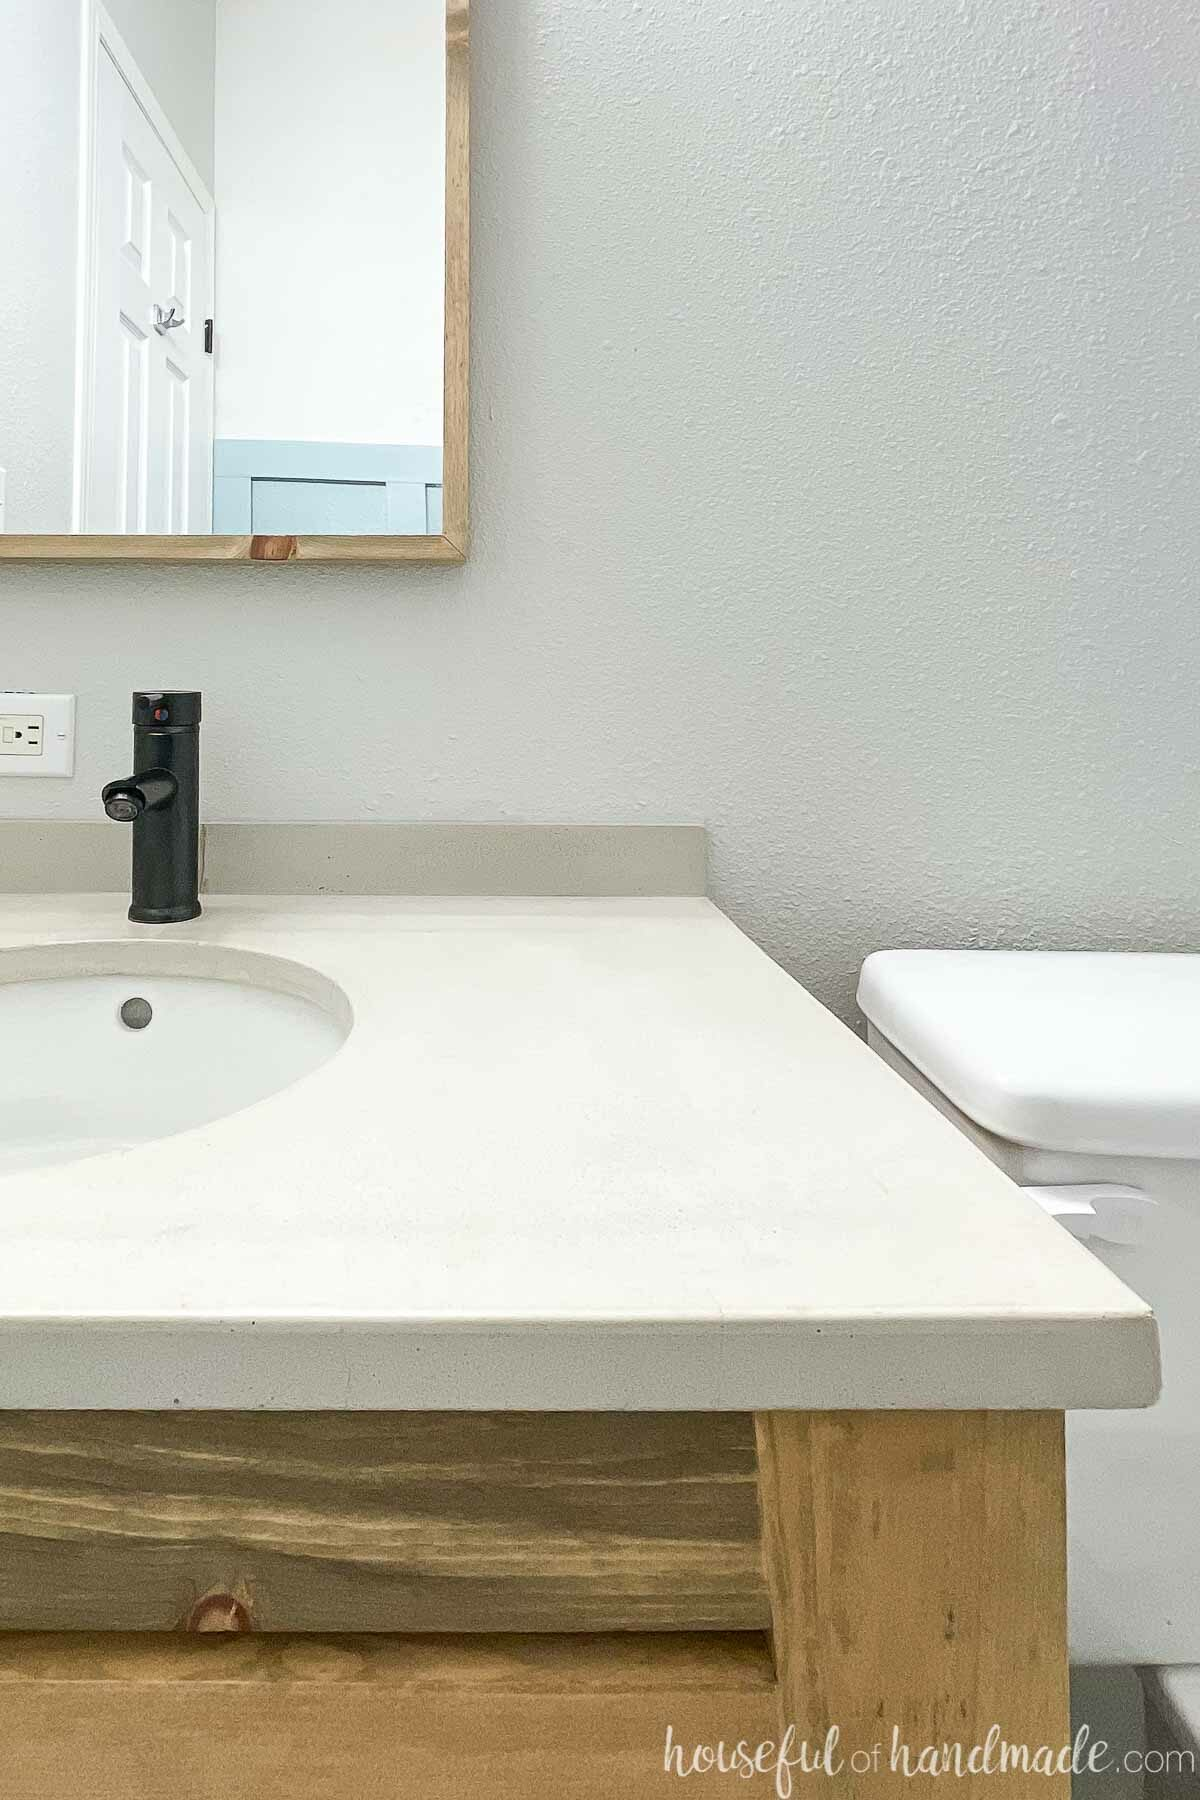 Half of the DIY concrete countertop installed on an open vanity with a black faucet and white undermount sink.